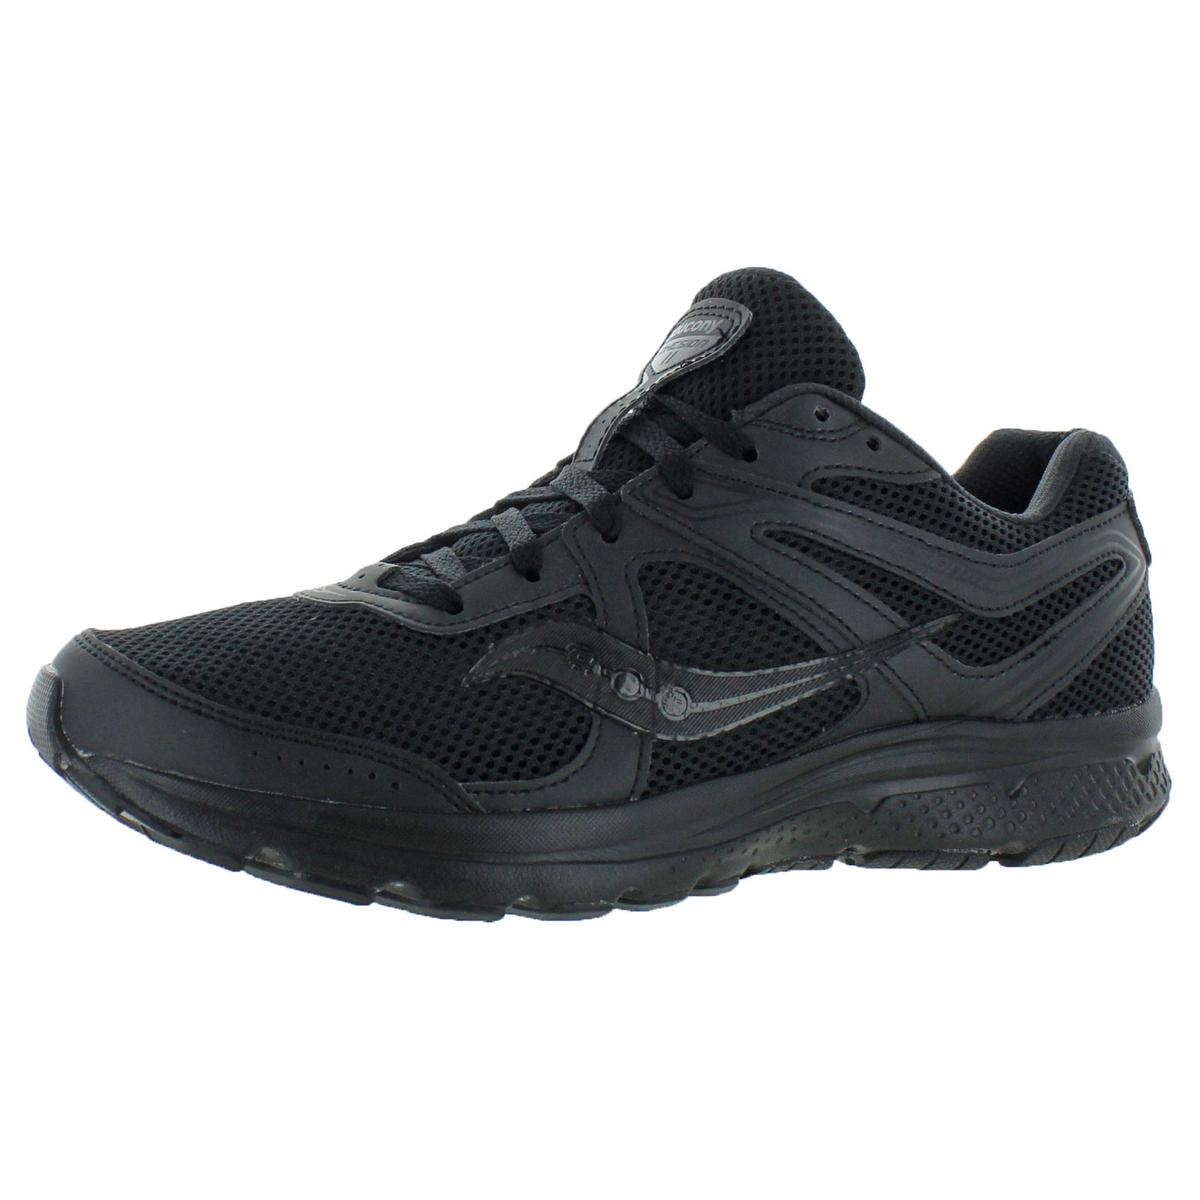 b0bbe0227 Details about Saucony Mens Cohesion 11 Grid Athletic Trainer Running Shoes  Sneakers BHFO 1963